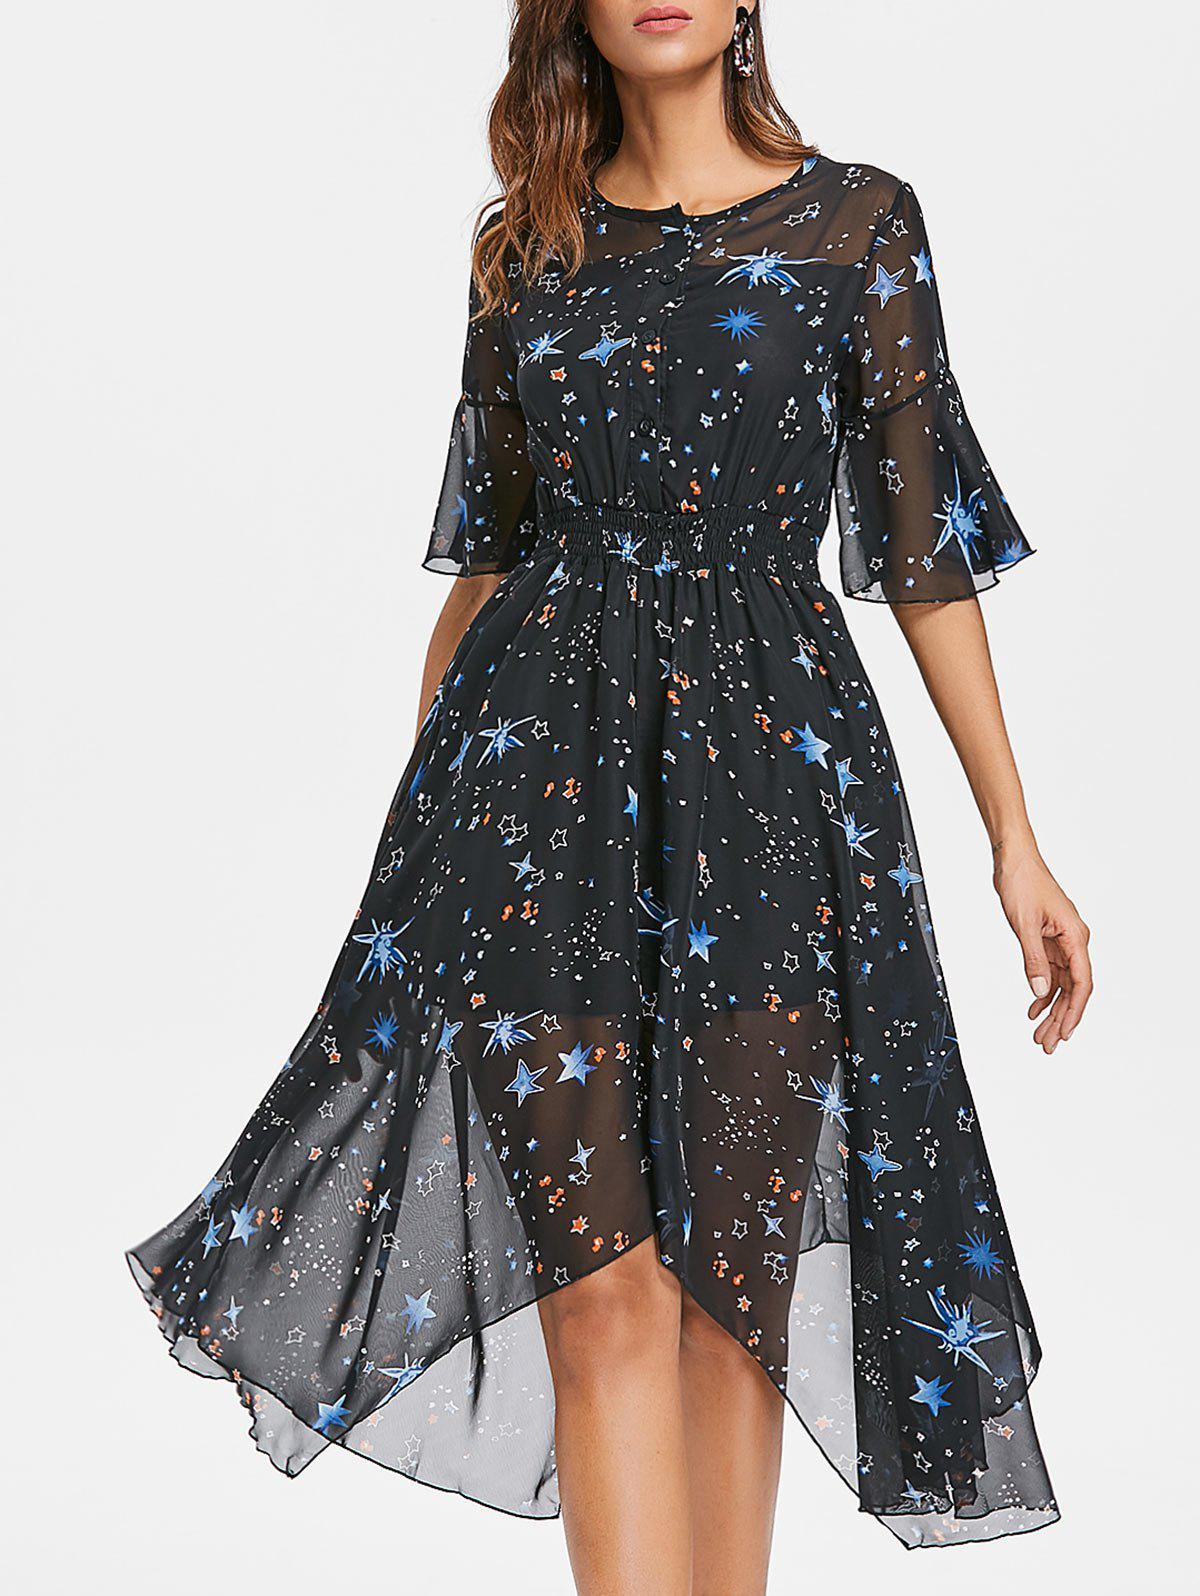 Hot Stars Print Chiffon Midi Handkerchief Dress